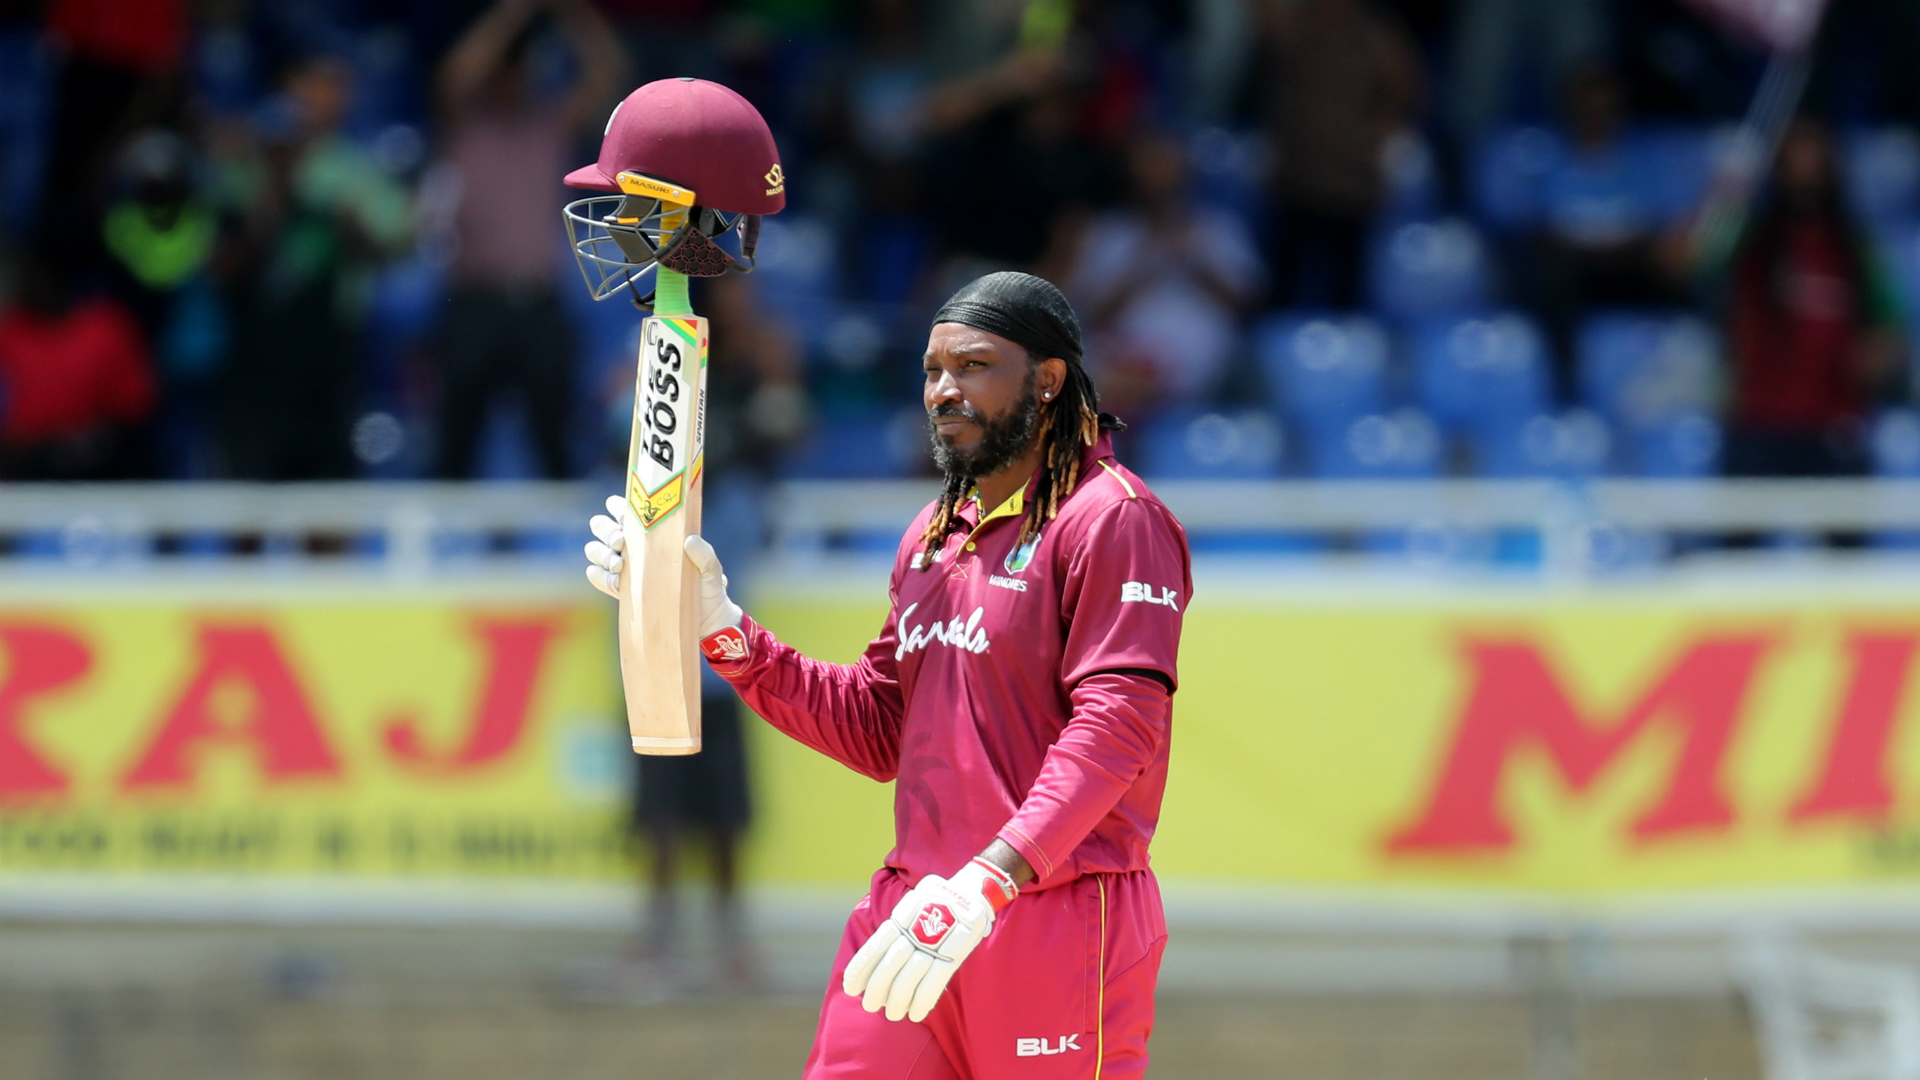 Chris Gayle turned on the style in his likely ODI farewell by cracking a flurry of boundaries in an impressive half-century against India.